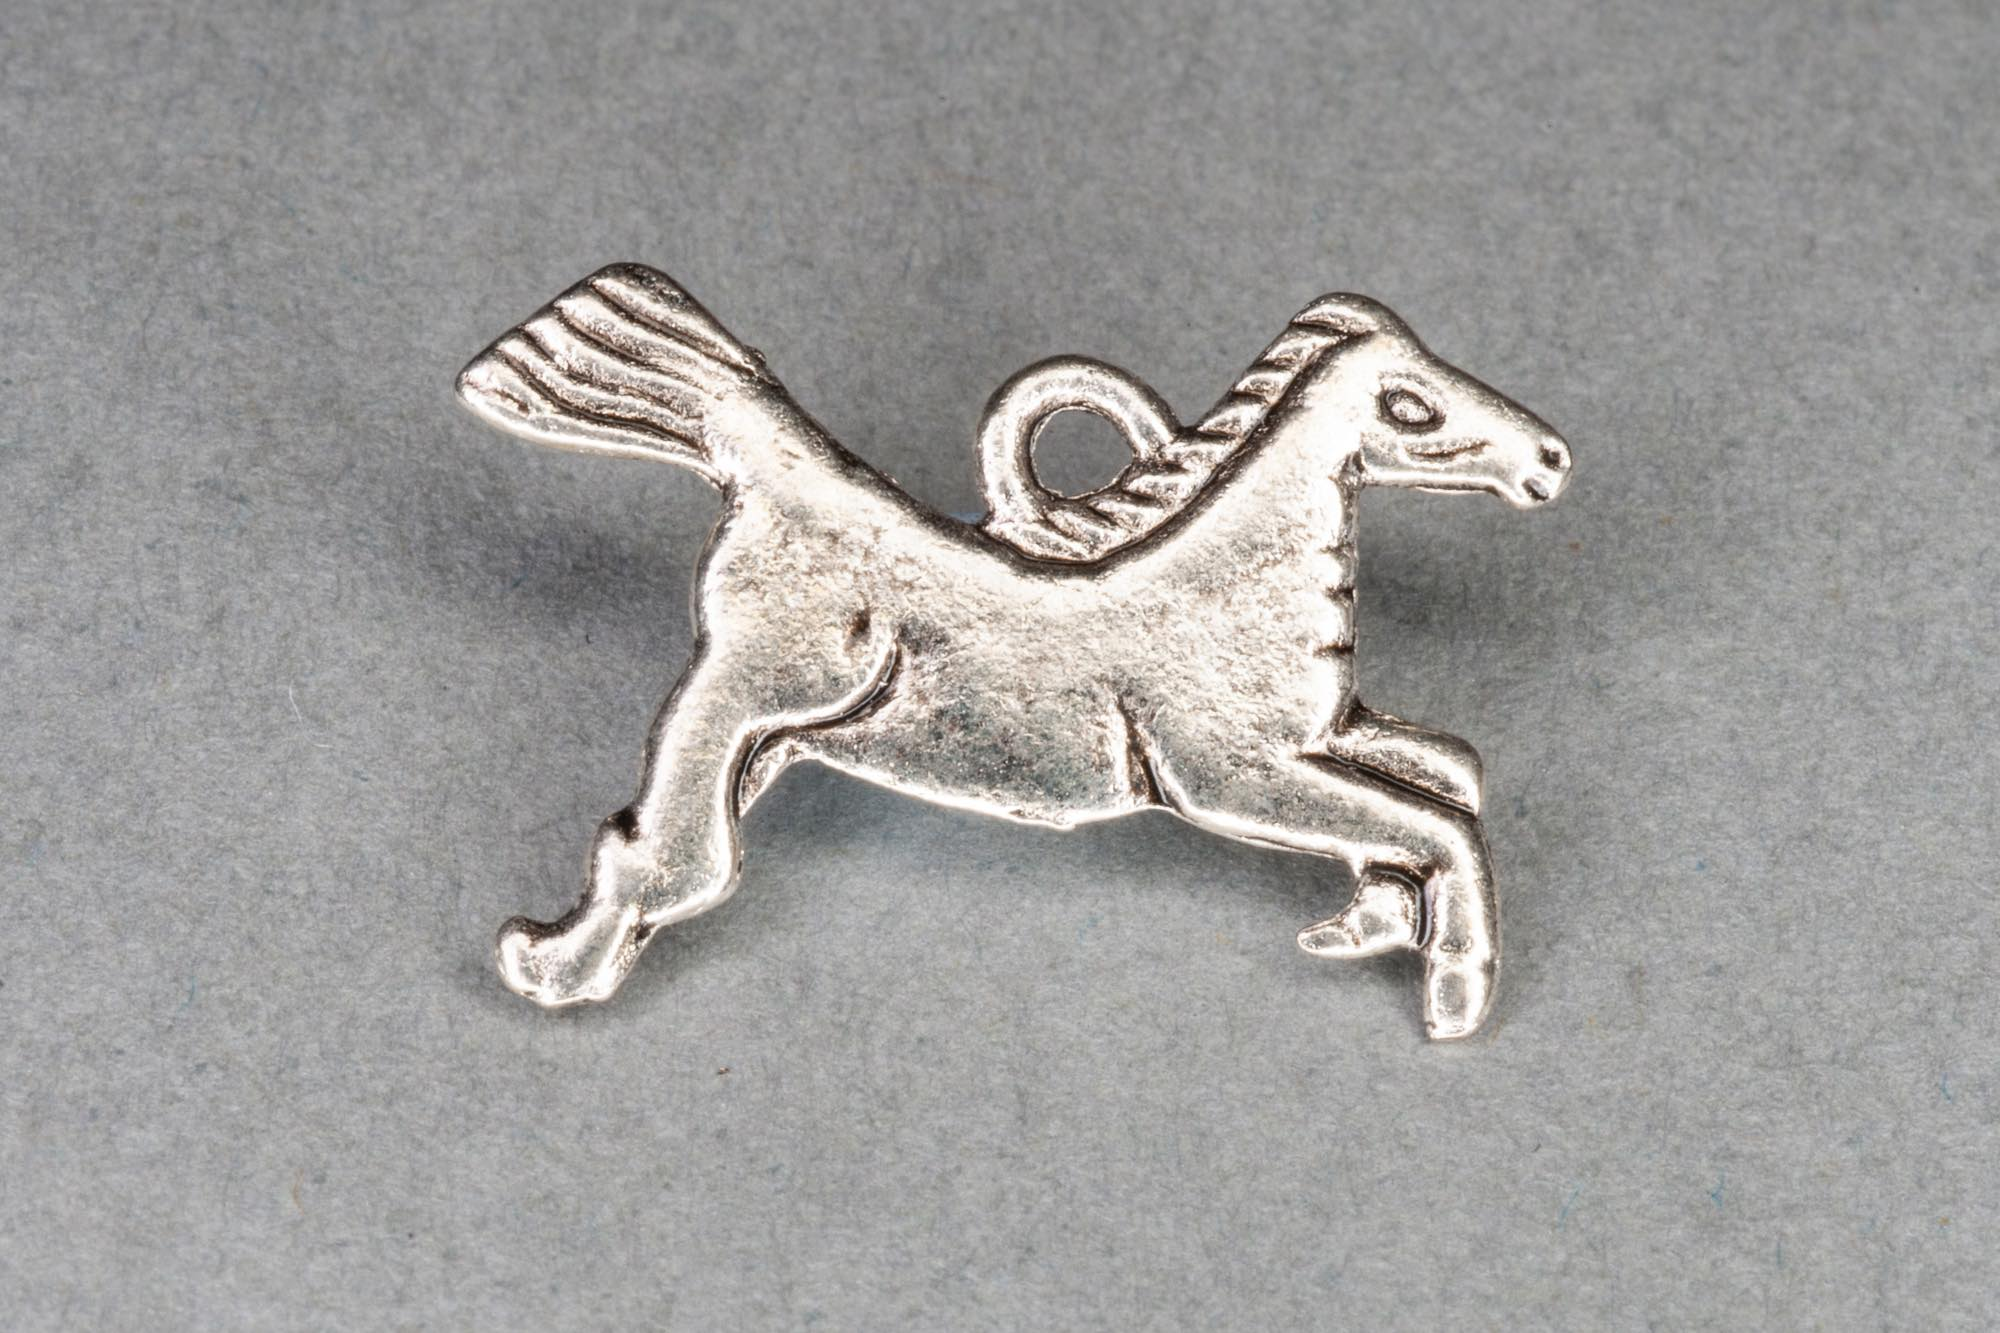 Antique Silver Horse Charm 14x20mm